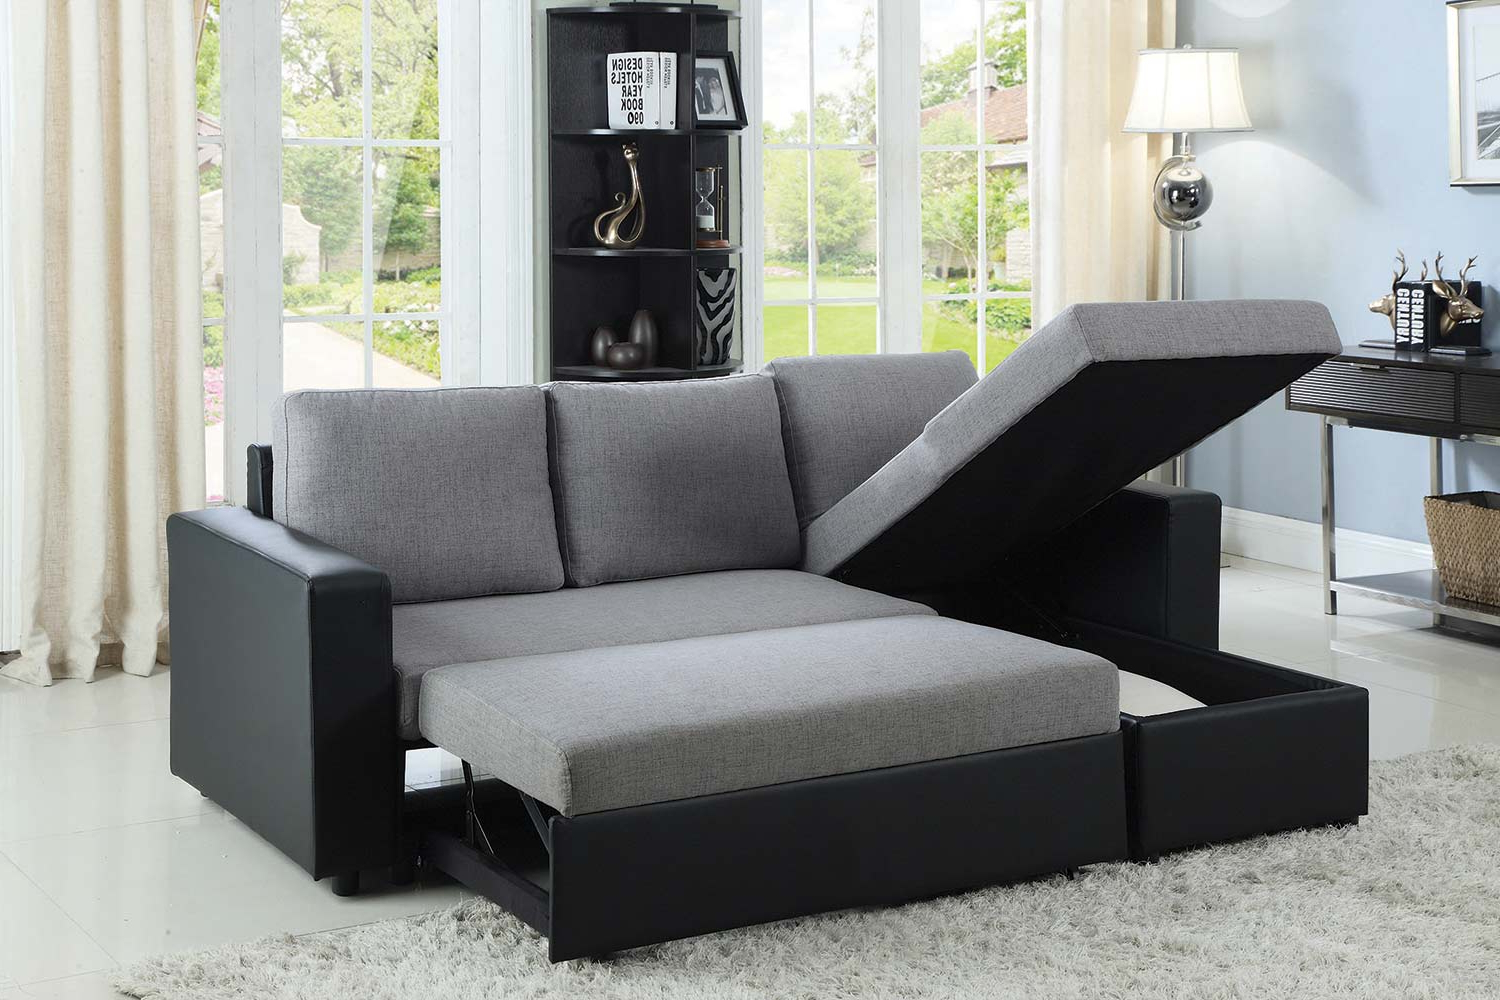 Felton Modern Style Pullout Sleeper Sofas Black Intended For Well Known Coaster Baylor Sectional Sofa – Grey/Black 503929 At (View 3 of 25)